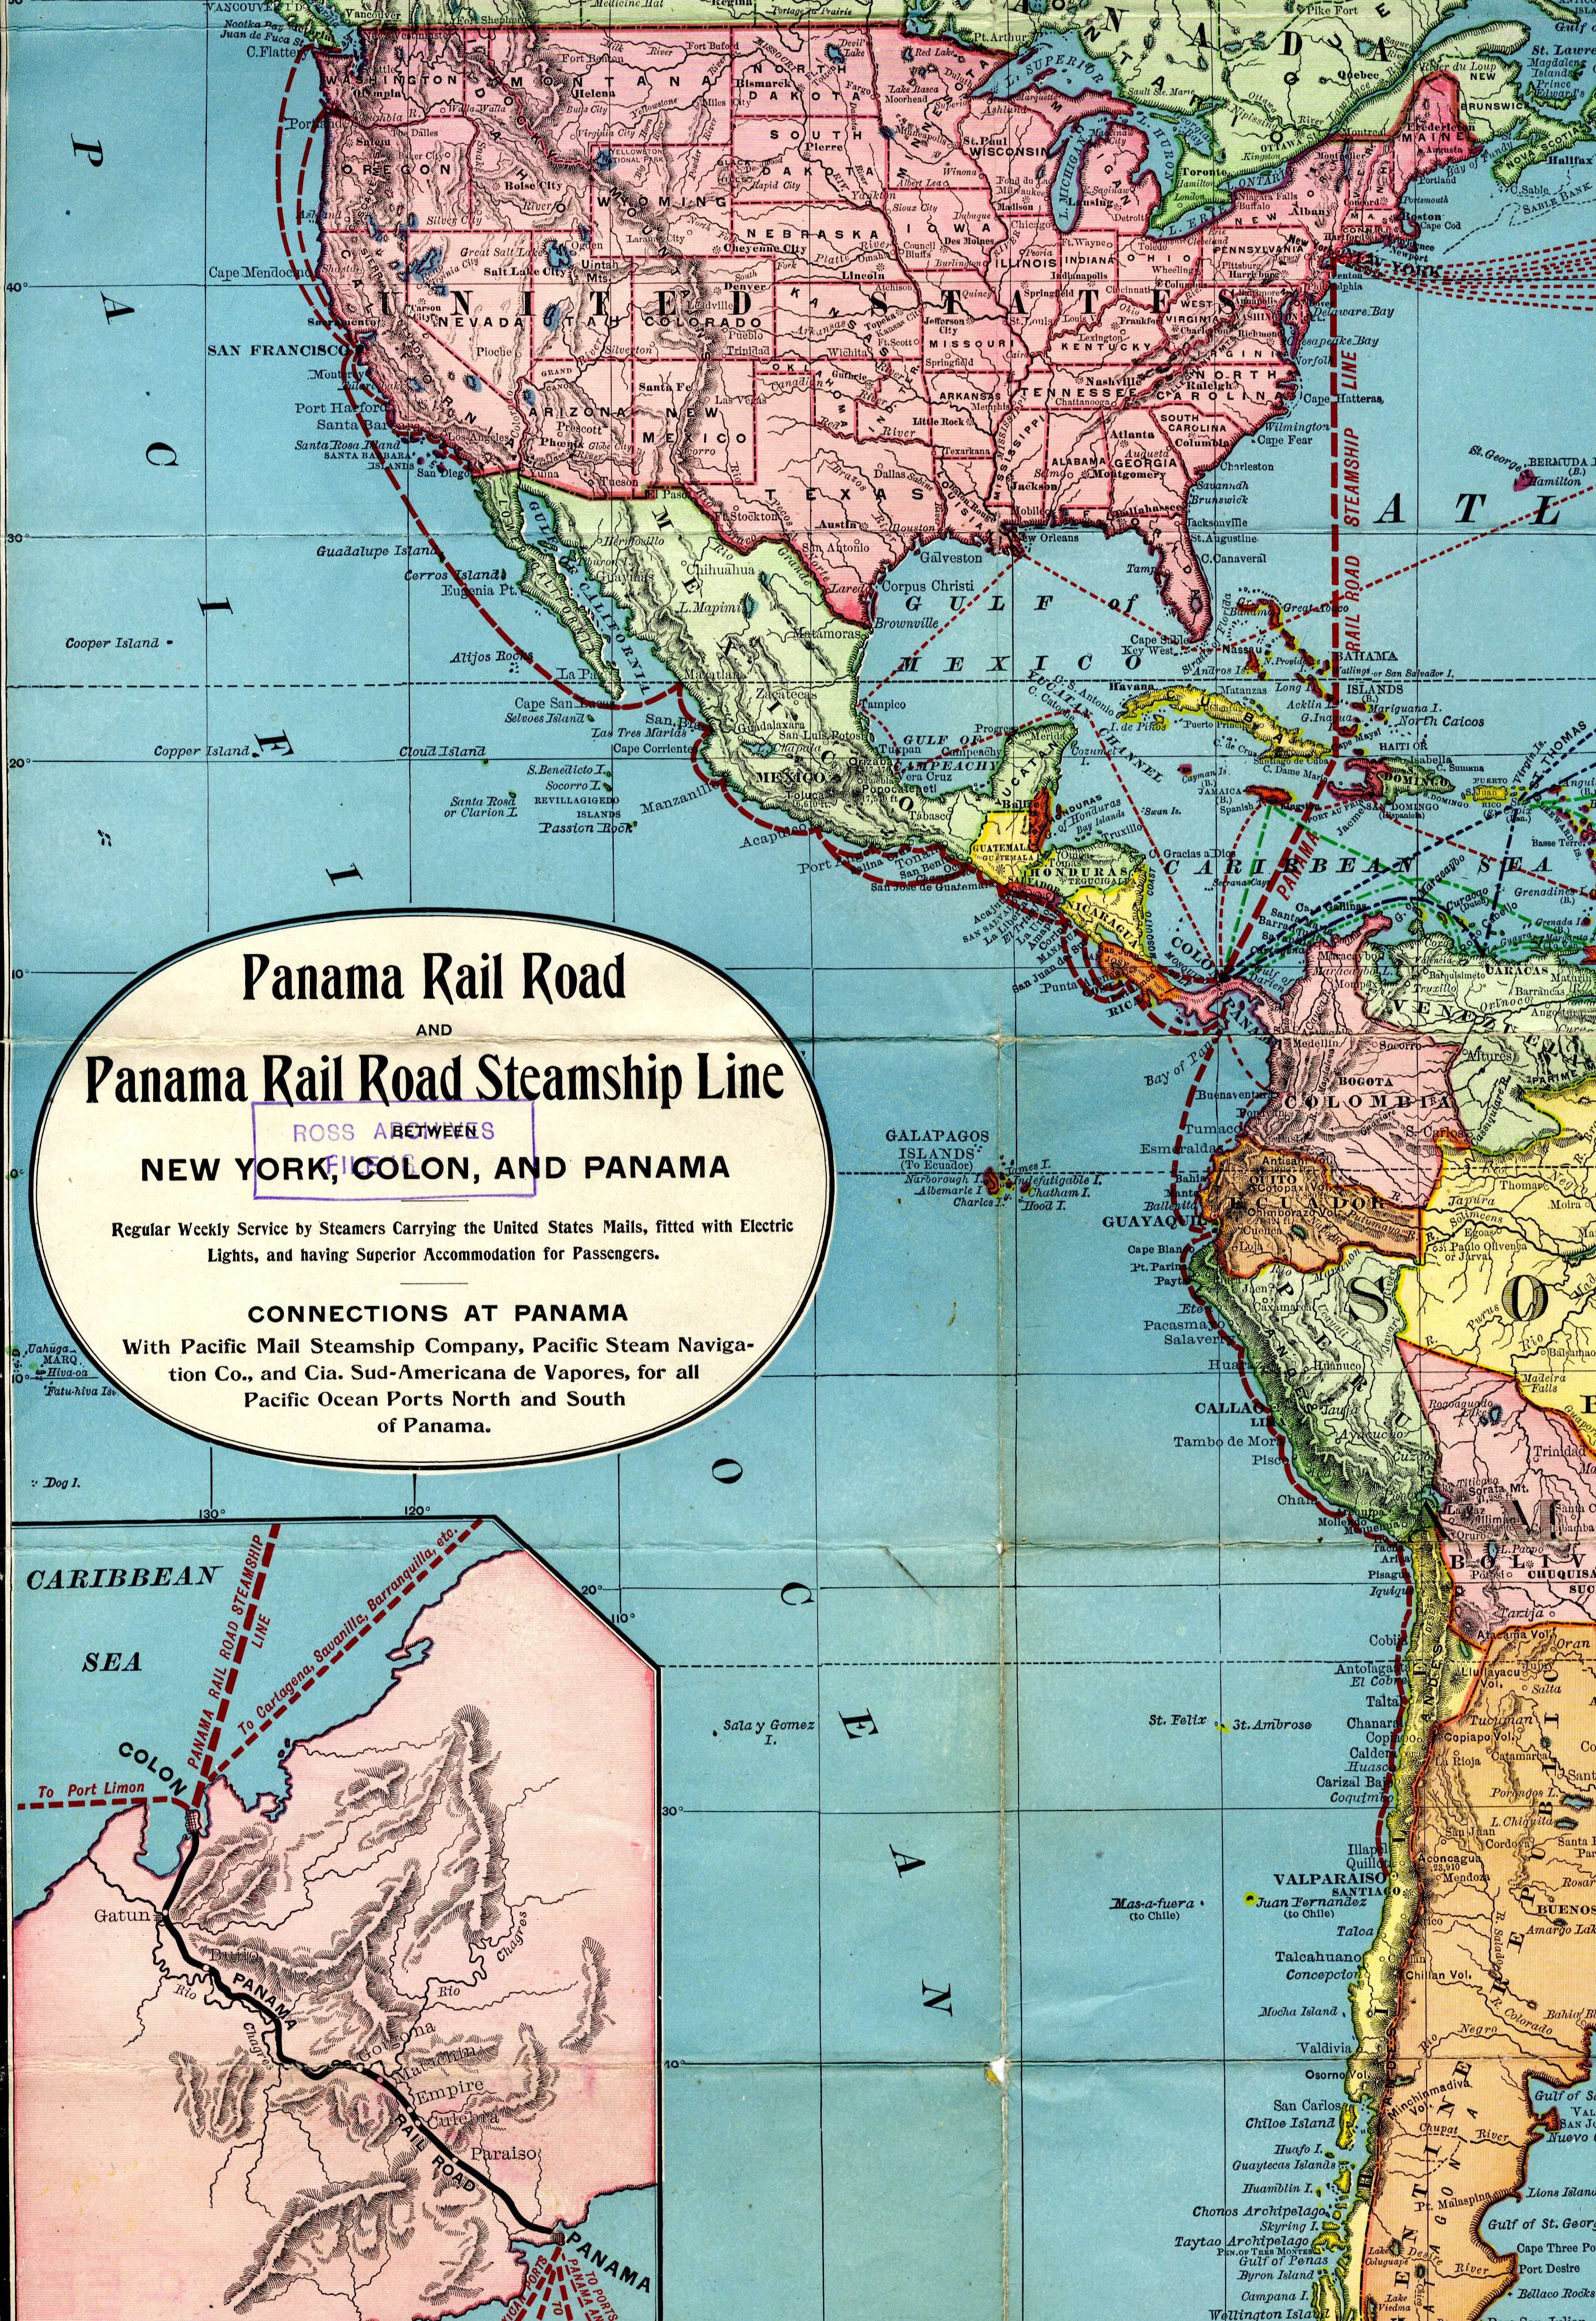 Map-of-NS-America-showing-Panama-Rail Panama C On A Map Of South America on tierra del fuego on a map of south america, new granada on a map of south america, lake titicaca on a map of south america, amazon basin on a map of south america, amazon river on a map of south america,